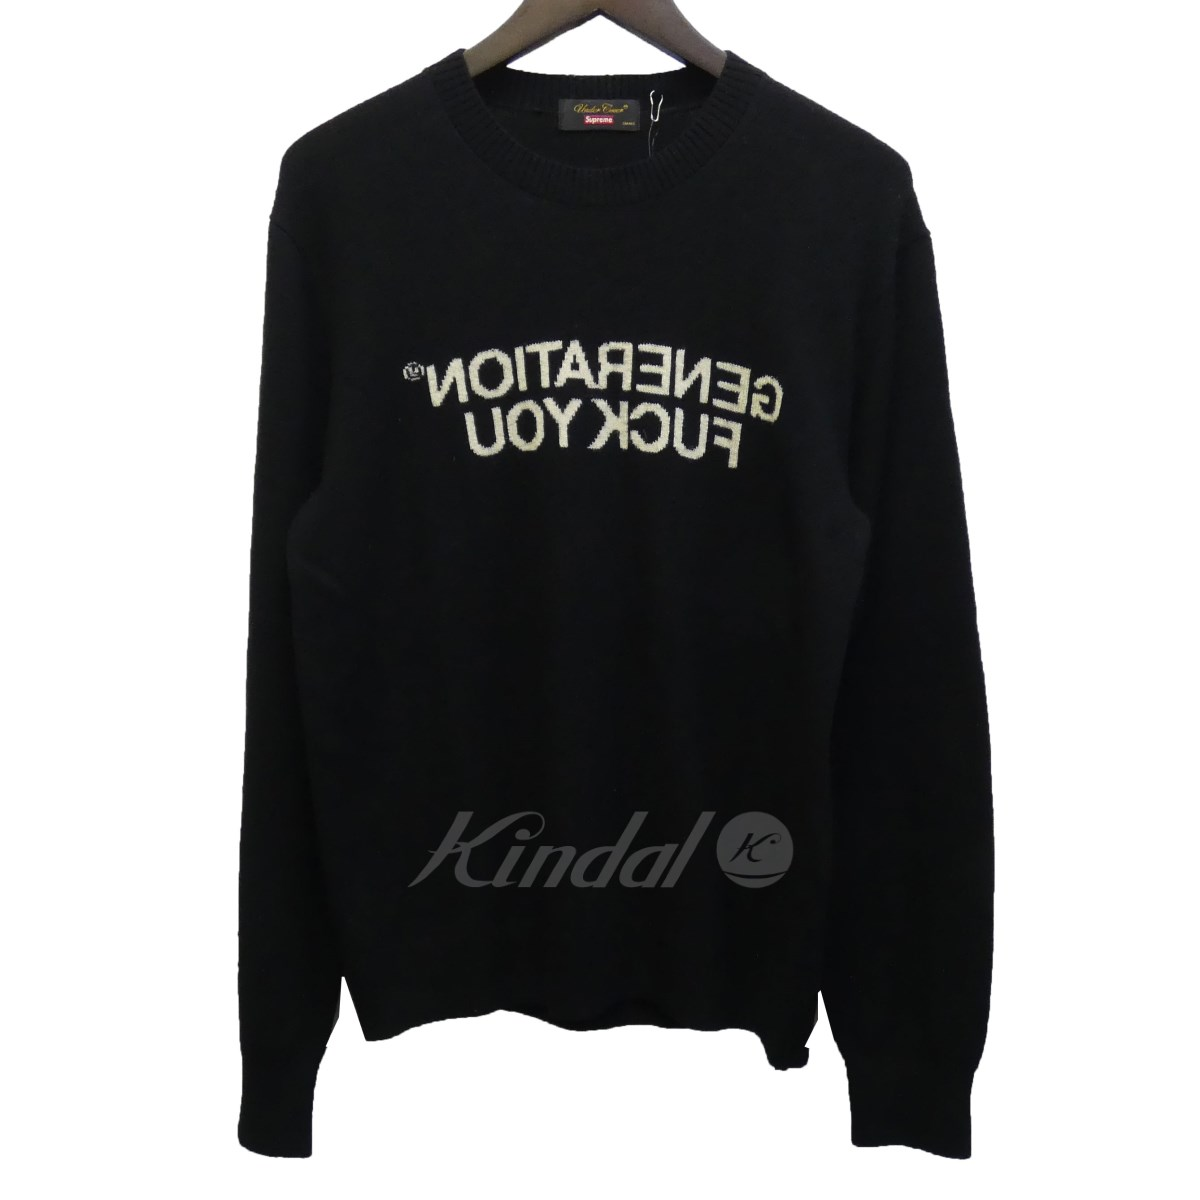 【中古】SUPREME × UNDERCOVER 16AW 「Generation Fuck You Sweater」カシミヤ混クルーネックニット 【送料無料】 【114571】 【KIND1550】